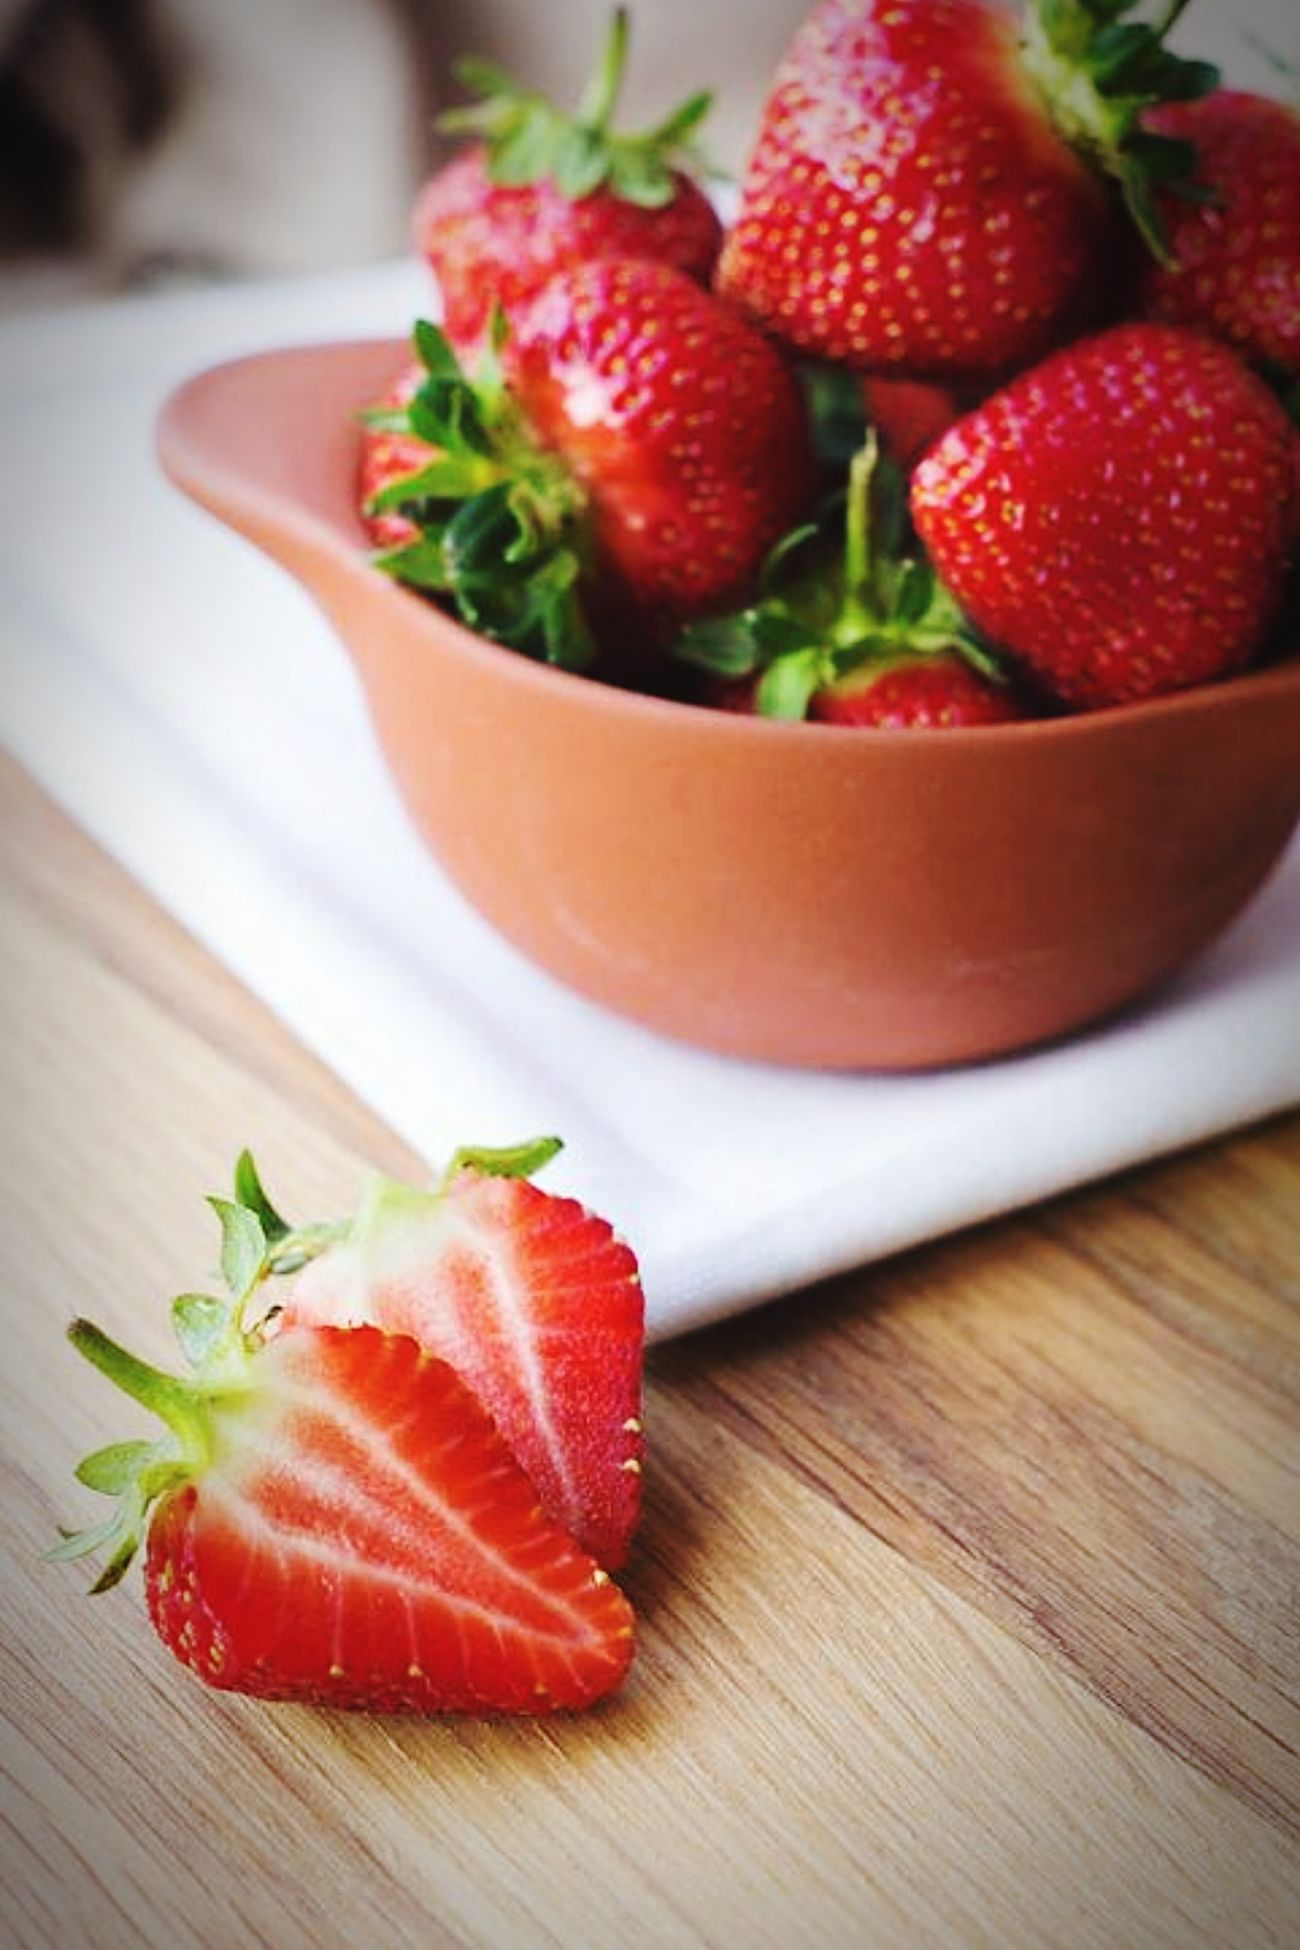 Taking a break from studying :) 🍓 Strawberry Fruit Food Sweet♡ No People Close-up Day Table Red Freshness Healthy Eating Lovely Day :) Peaceful Moment